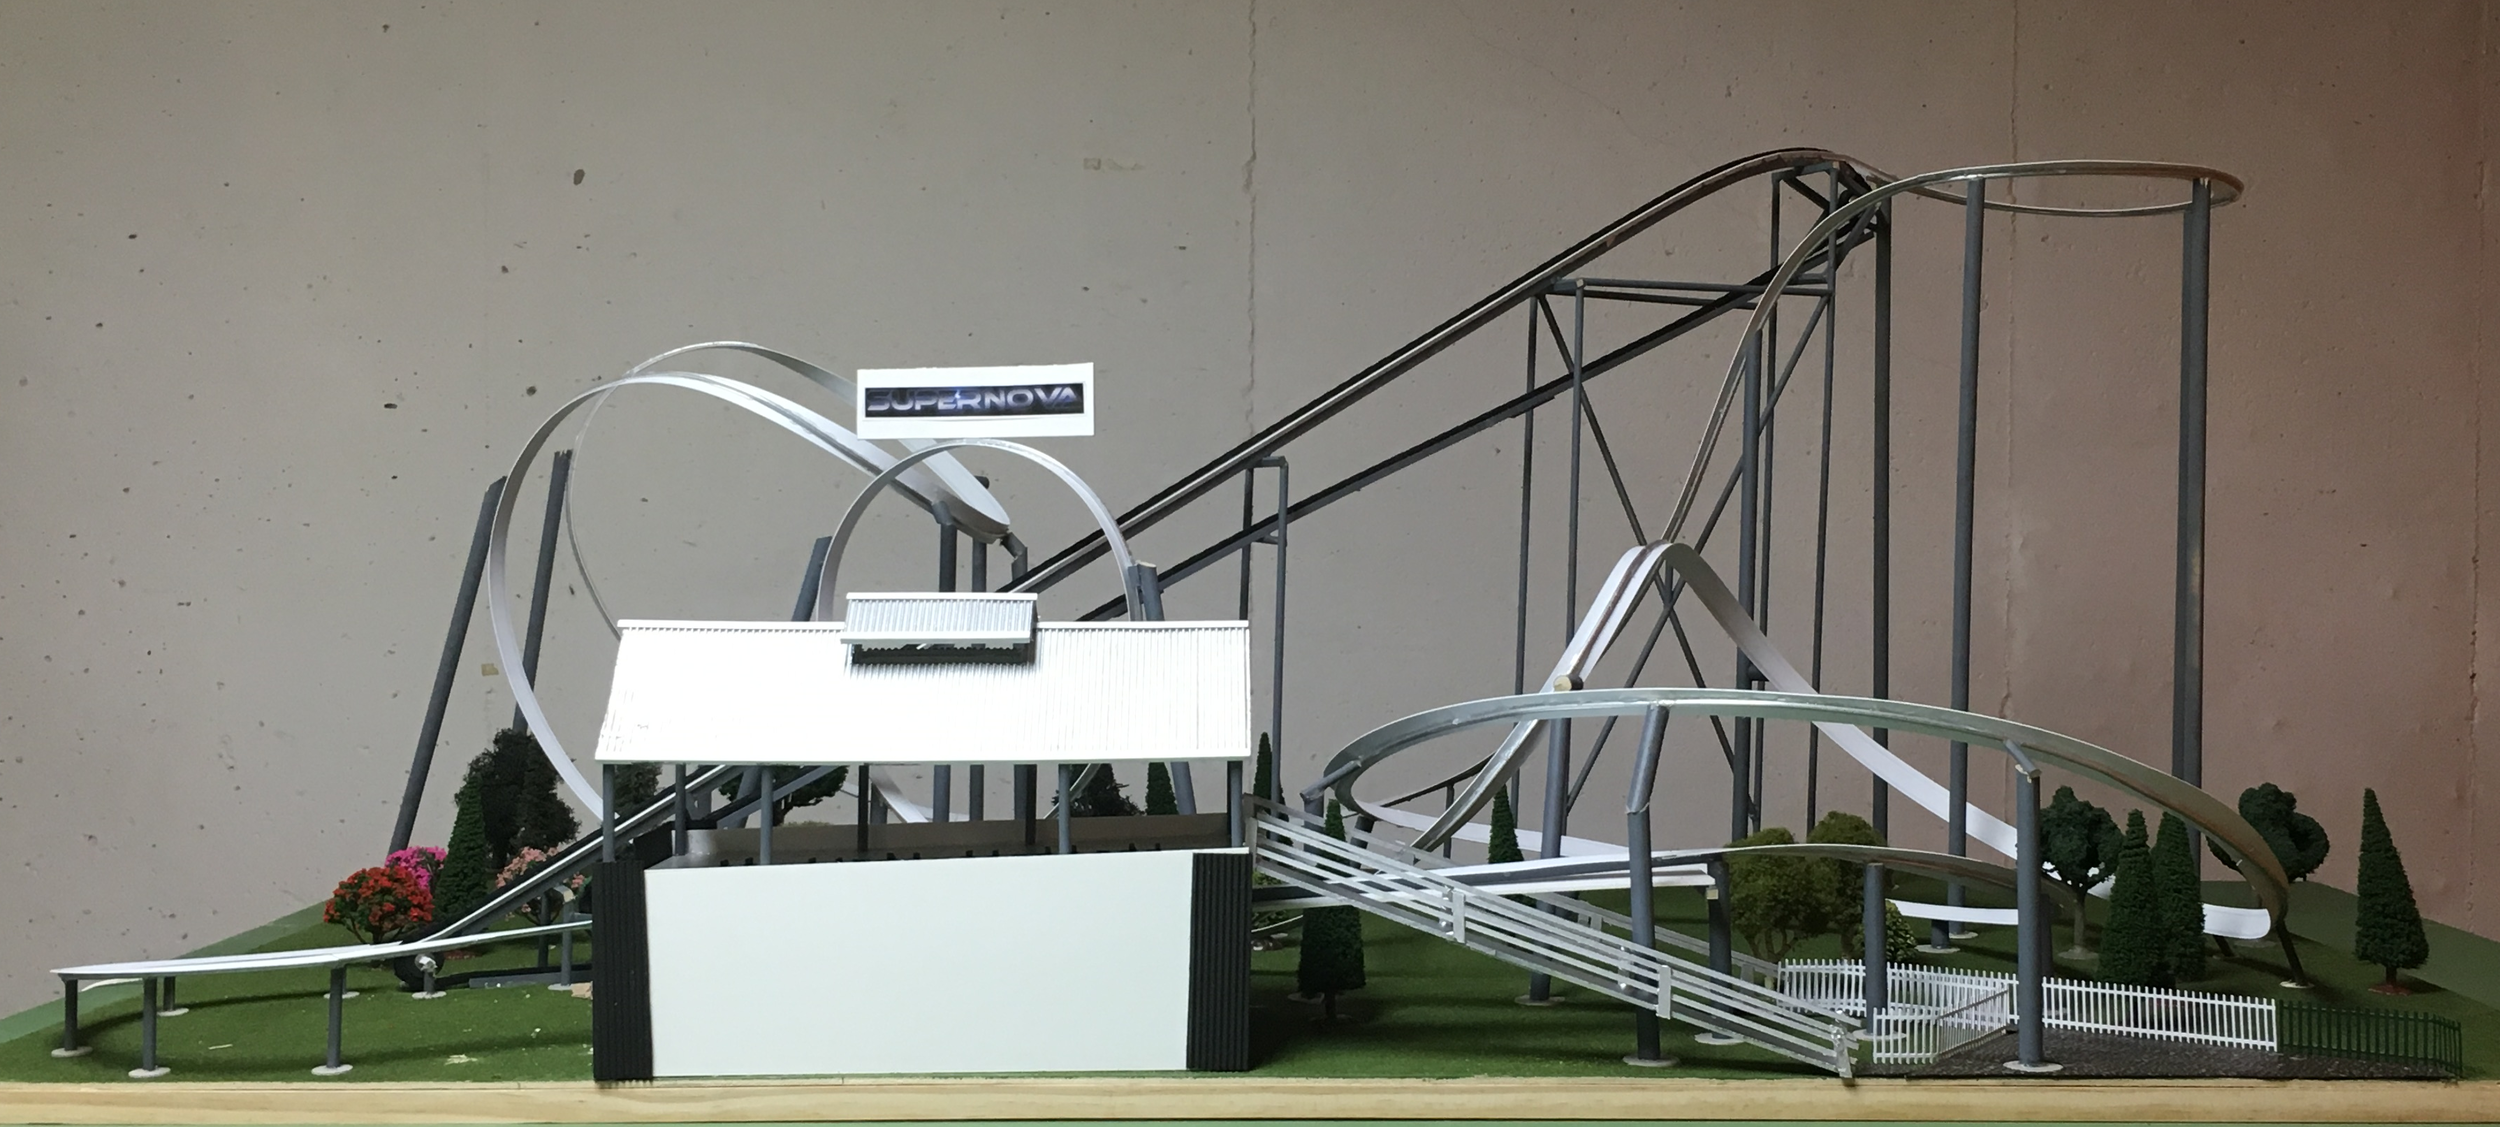 Side view of the model showing the profile.